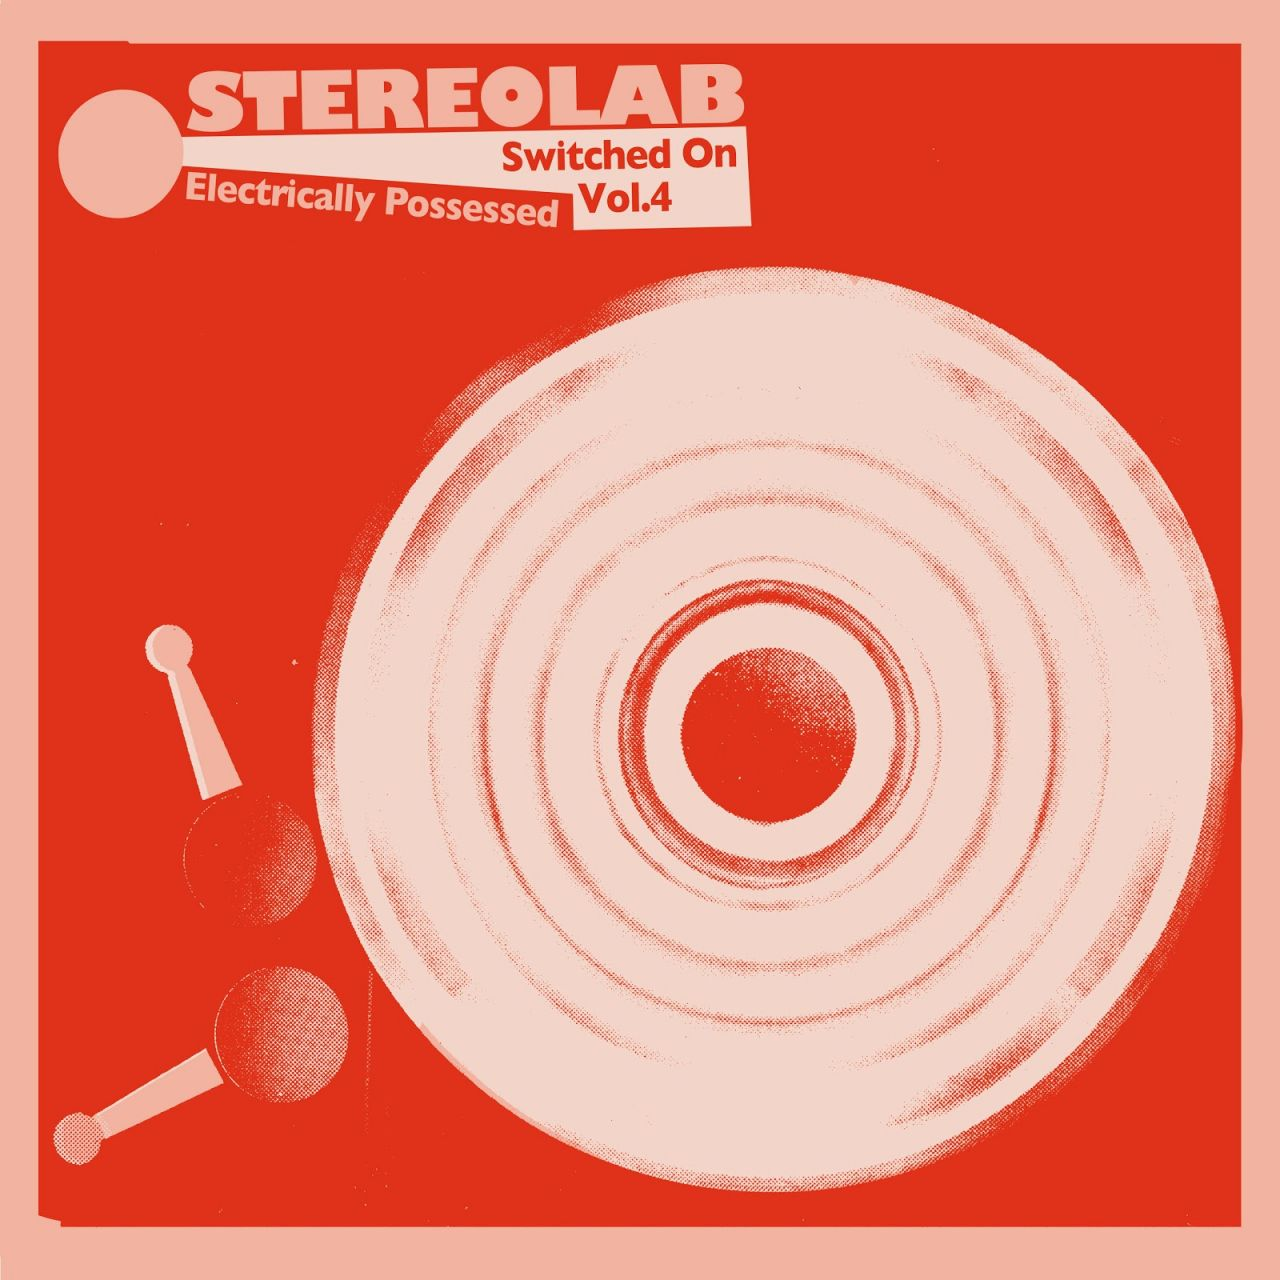 Stereolab - Electrically Possessed (Switched On Vol. 4) - 2CD